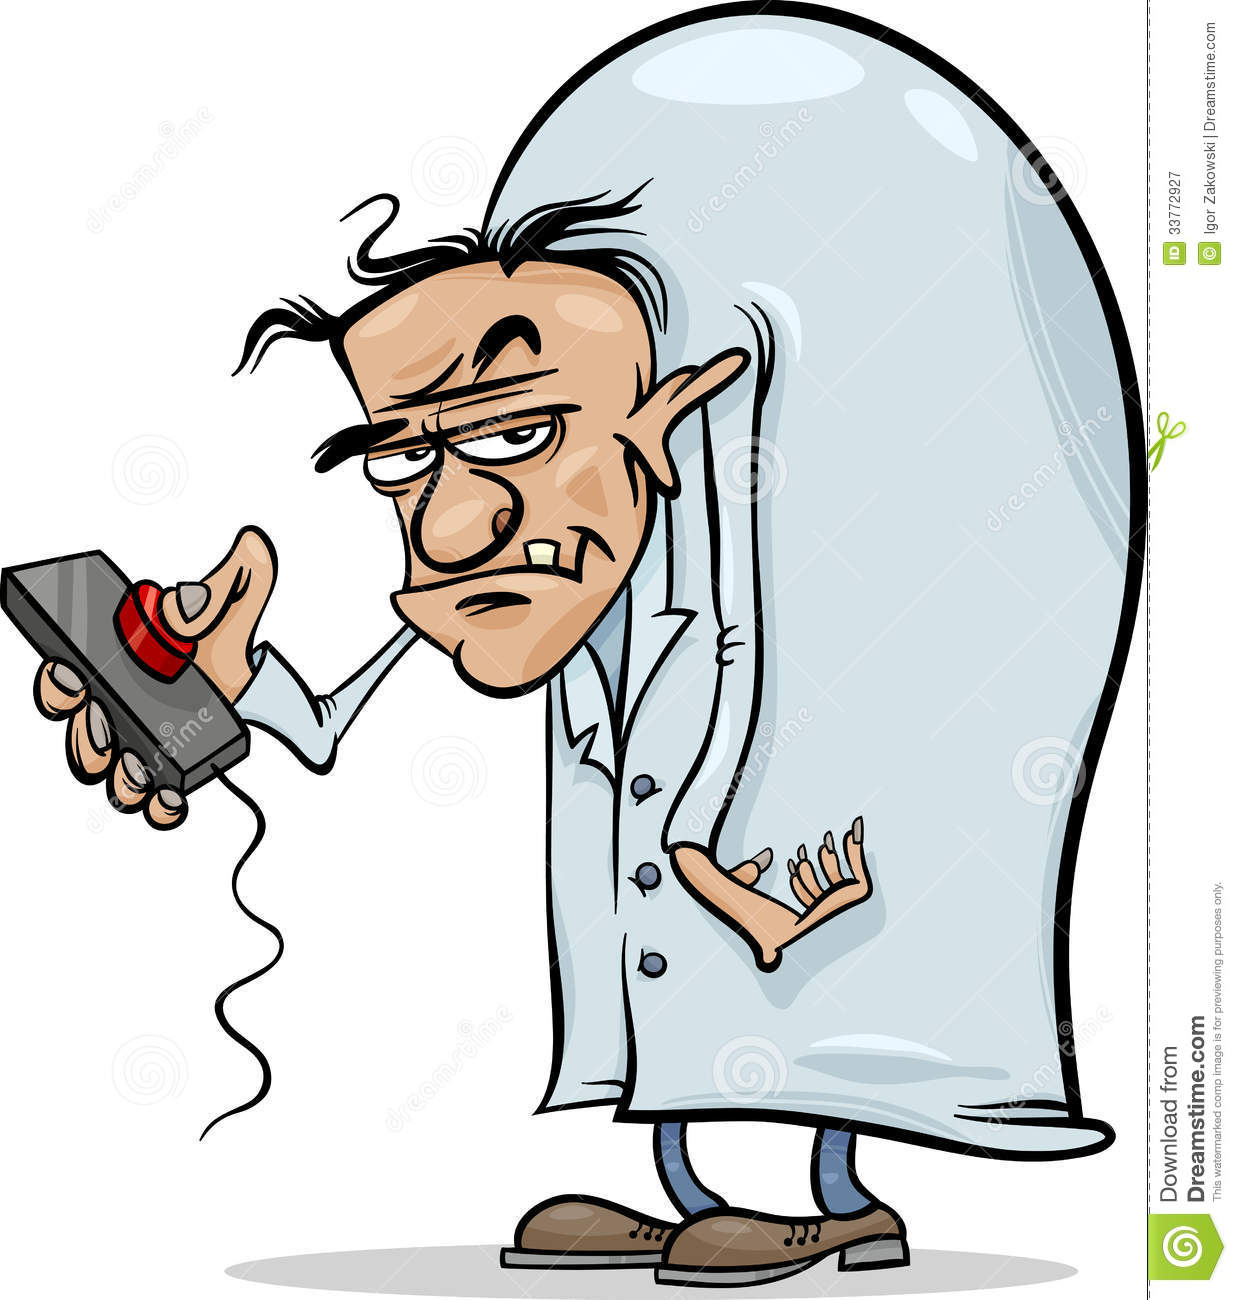 Evil Scientist Cartoon Illustration Royalty Free Stock Photography ...